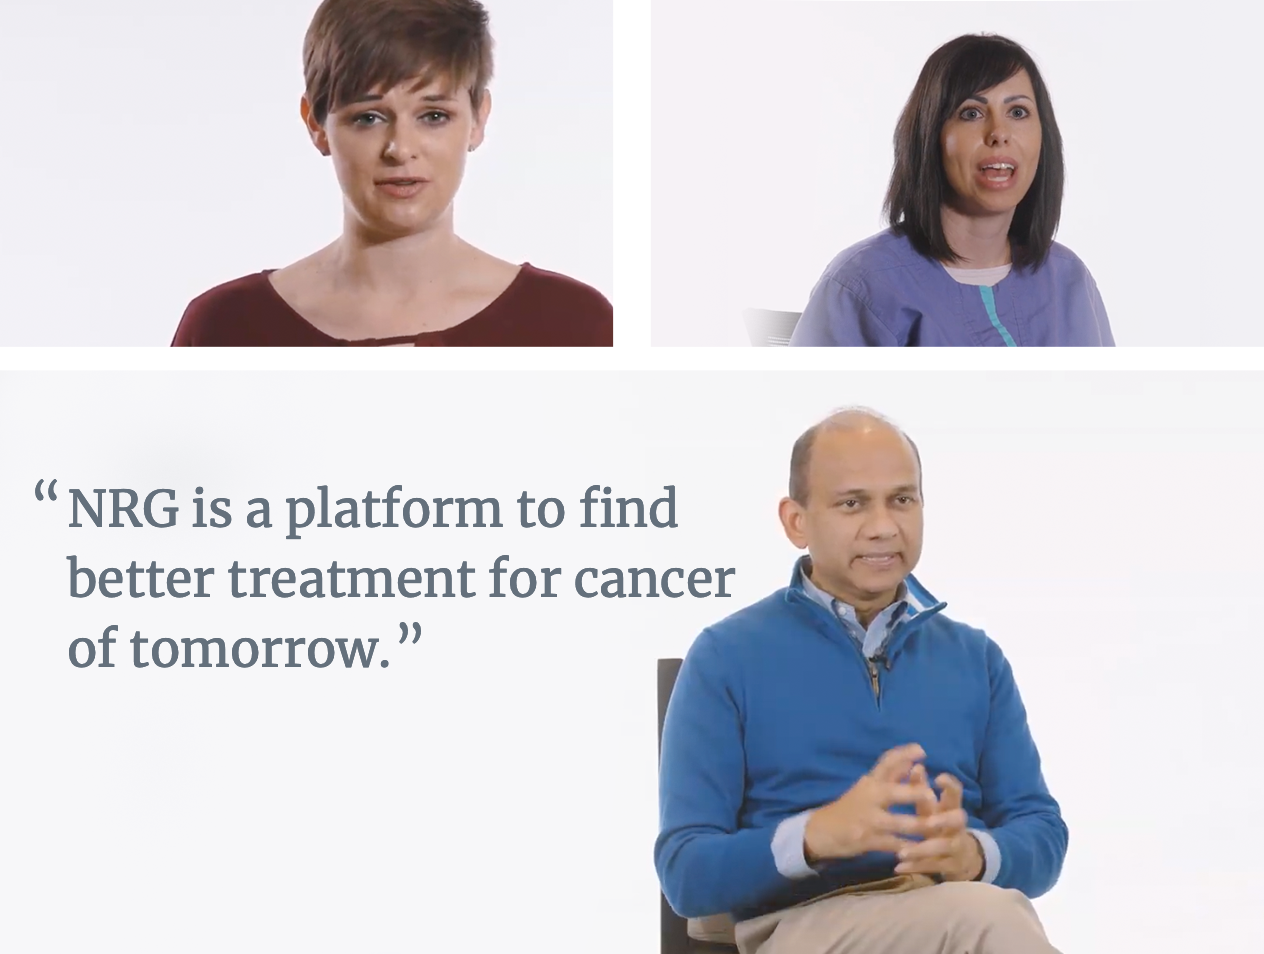 NRG is a platform to find better treatment for cancer of tomorrow.